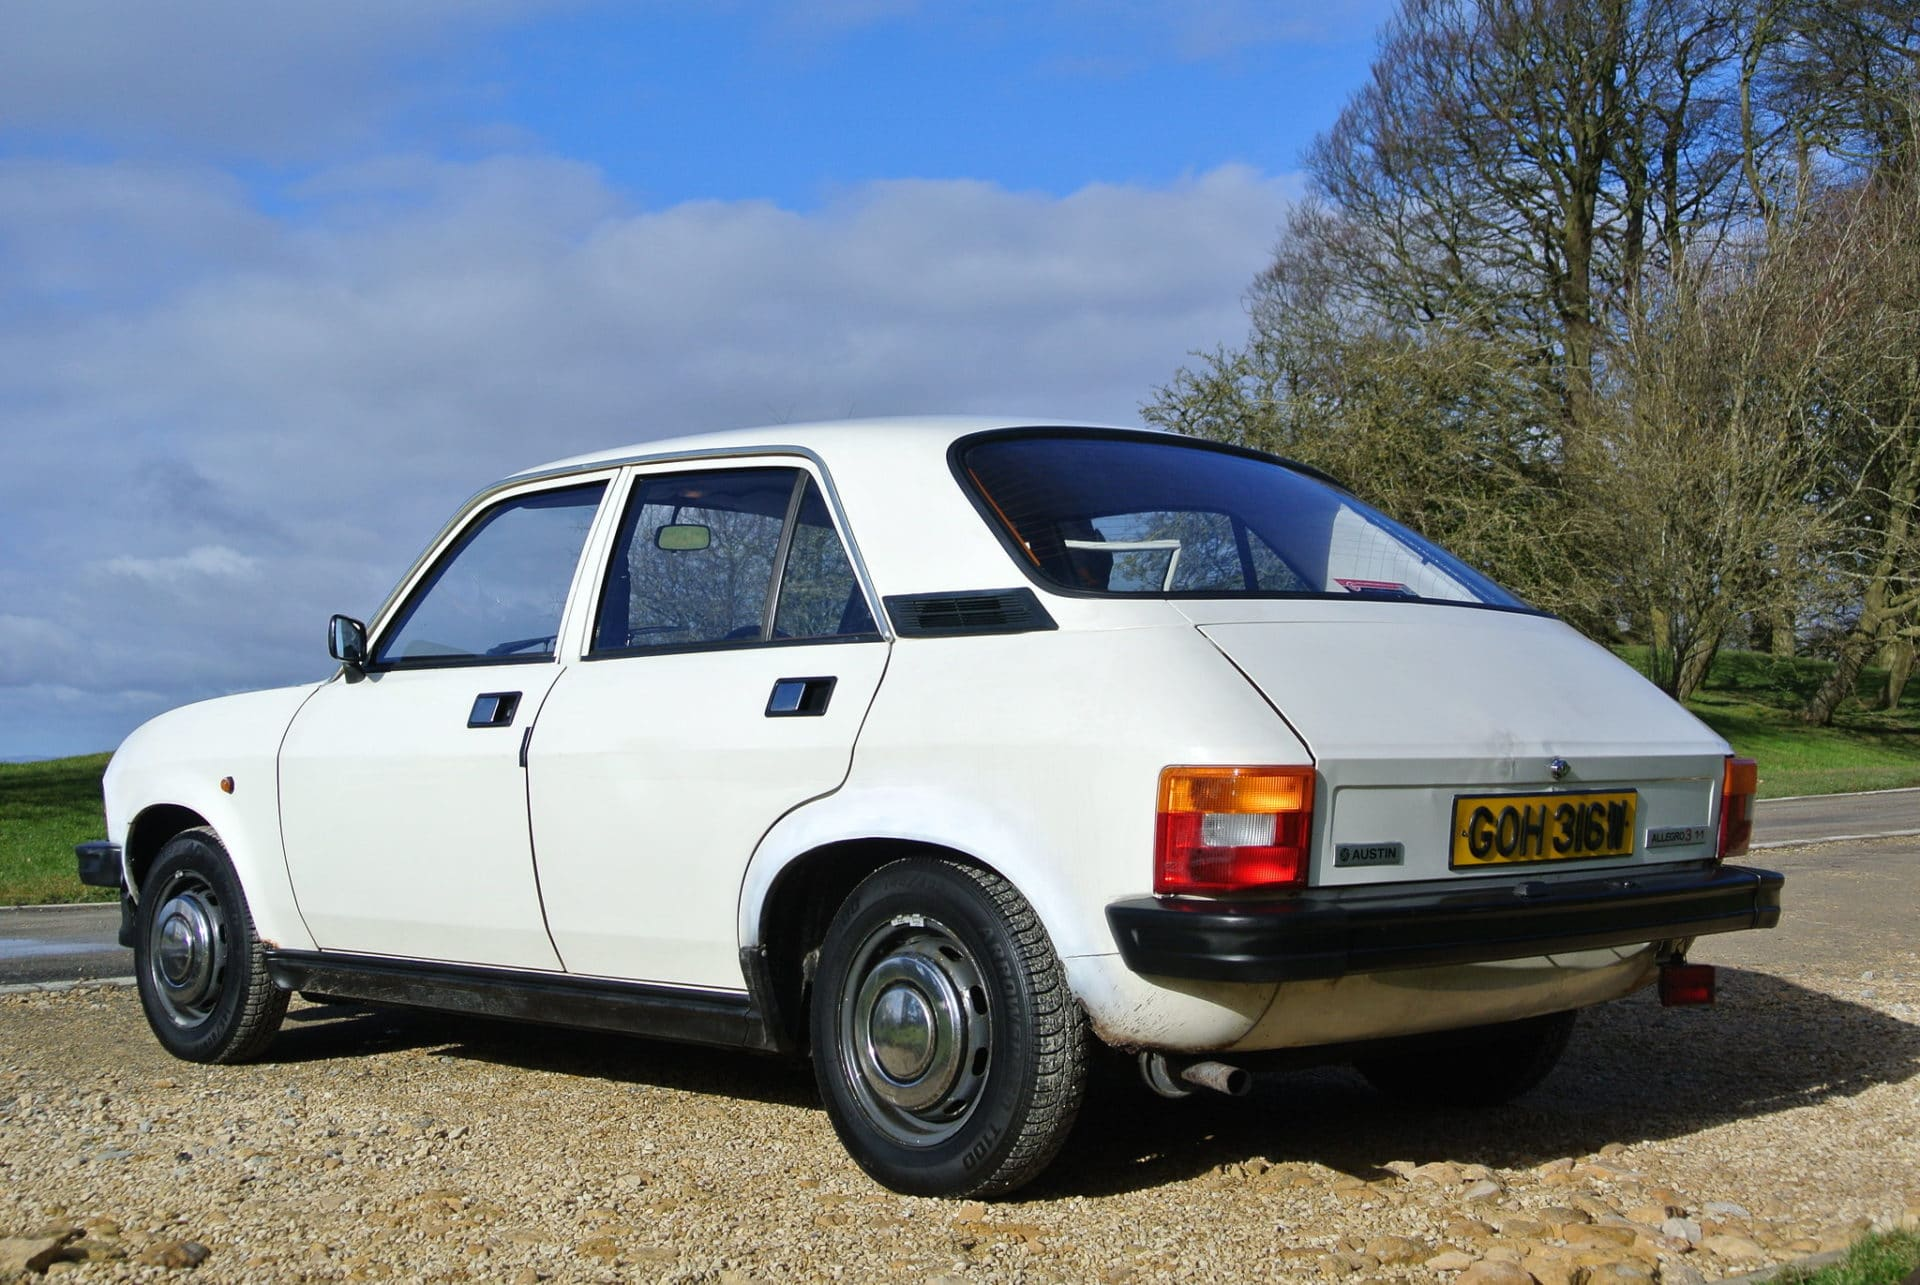 Austin, Austin Allegro, Allegro, classic car, retro car, motoring, automotive, carandclassic, carandclassic.co.uk, not2grand, not2grand.co.uk, motoring, automotive, car, cars, great escape cars, British leyland